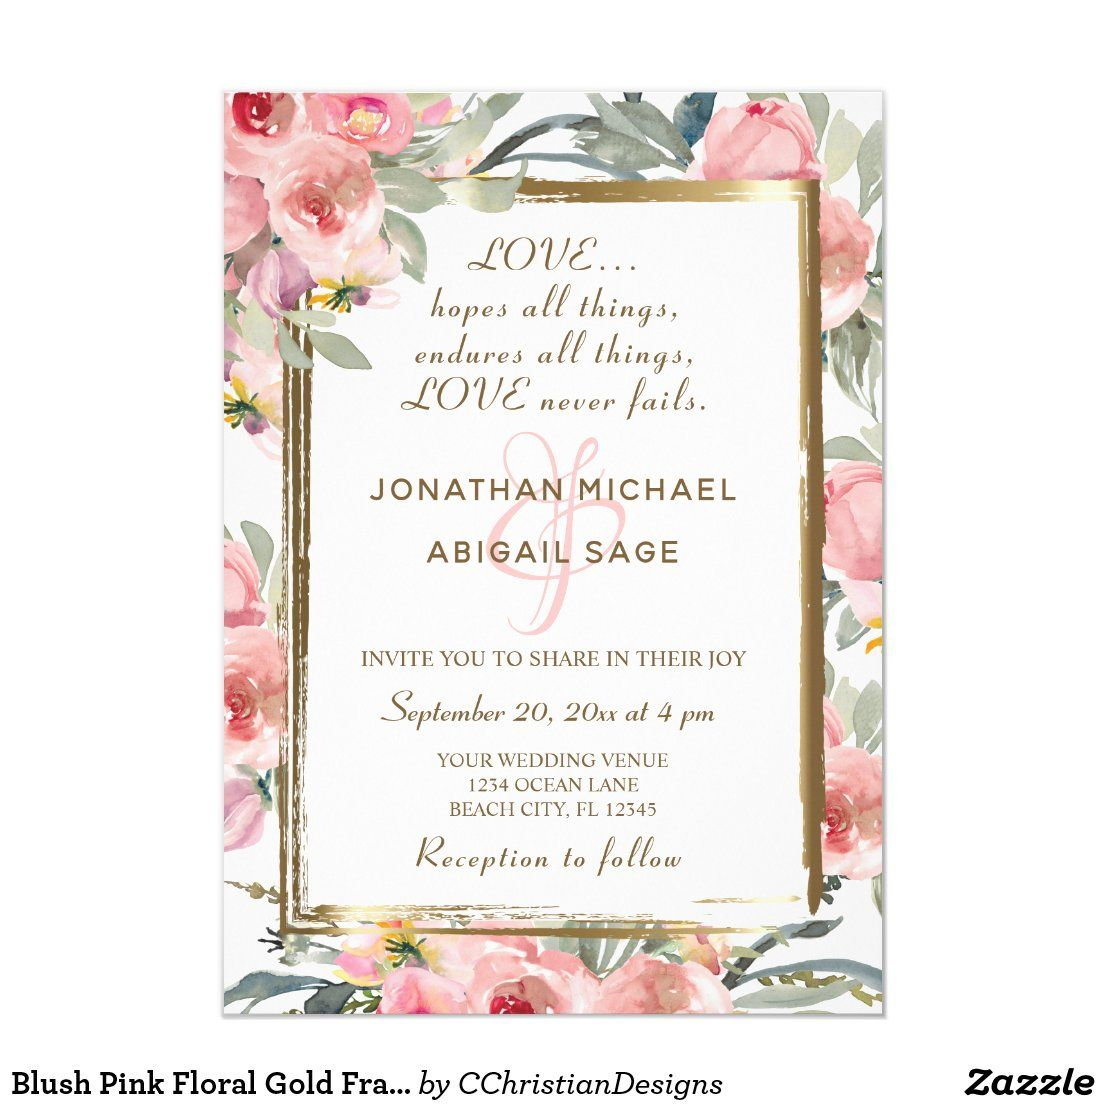 Blush Pink Floral Gold Frame Bible Verse Wedding